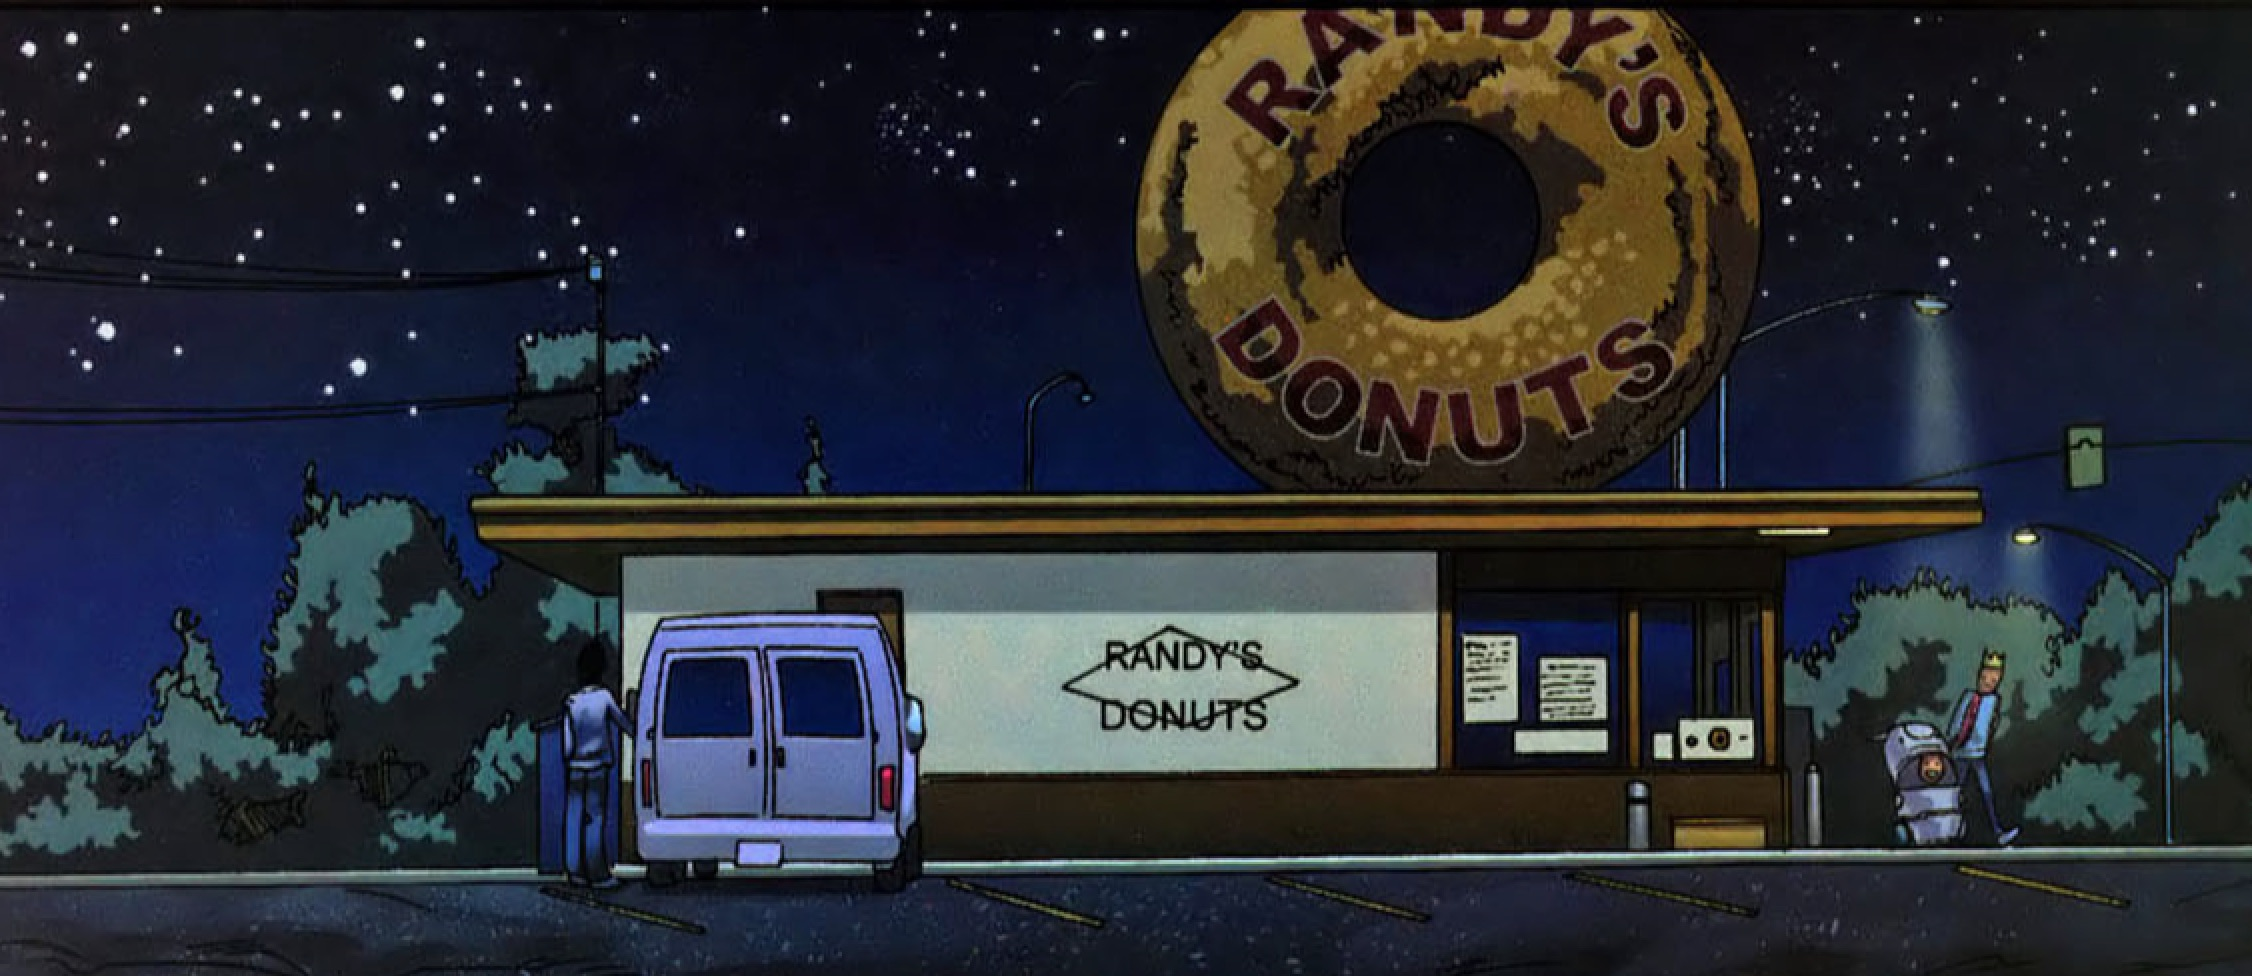 Randy's Donuts/Gallery